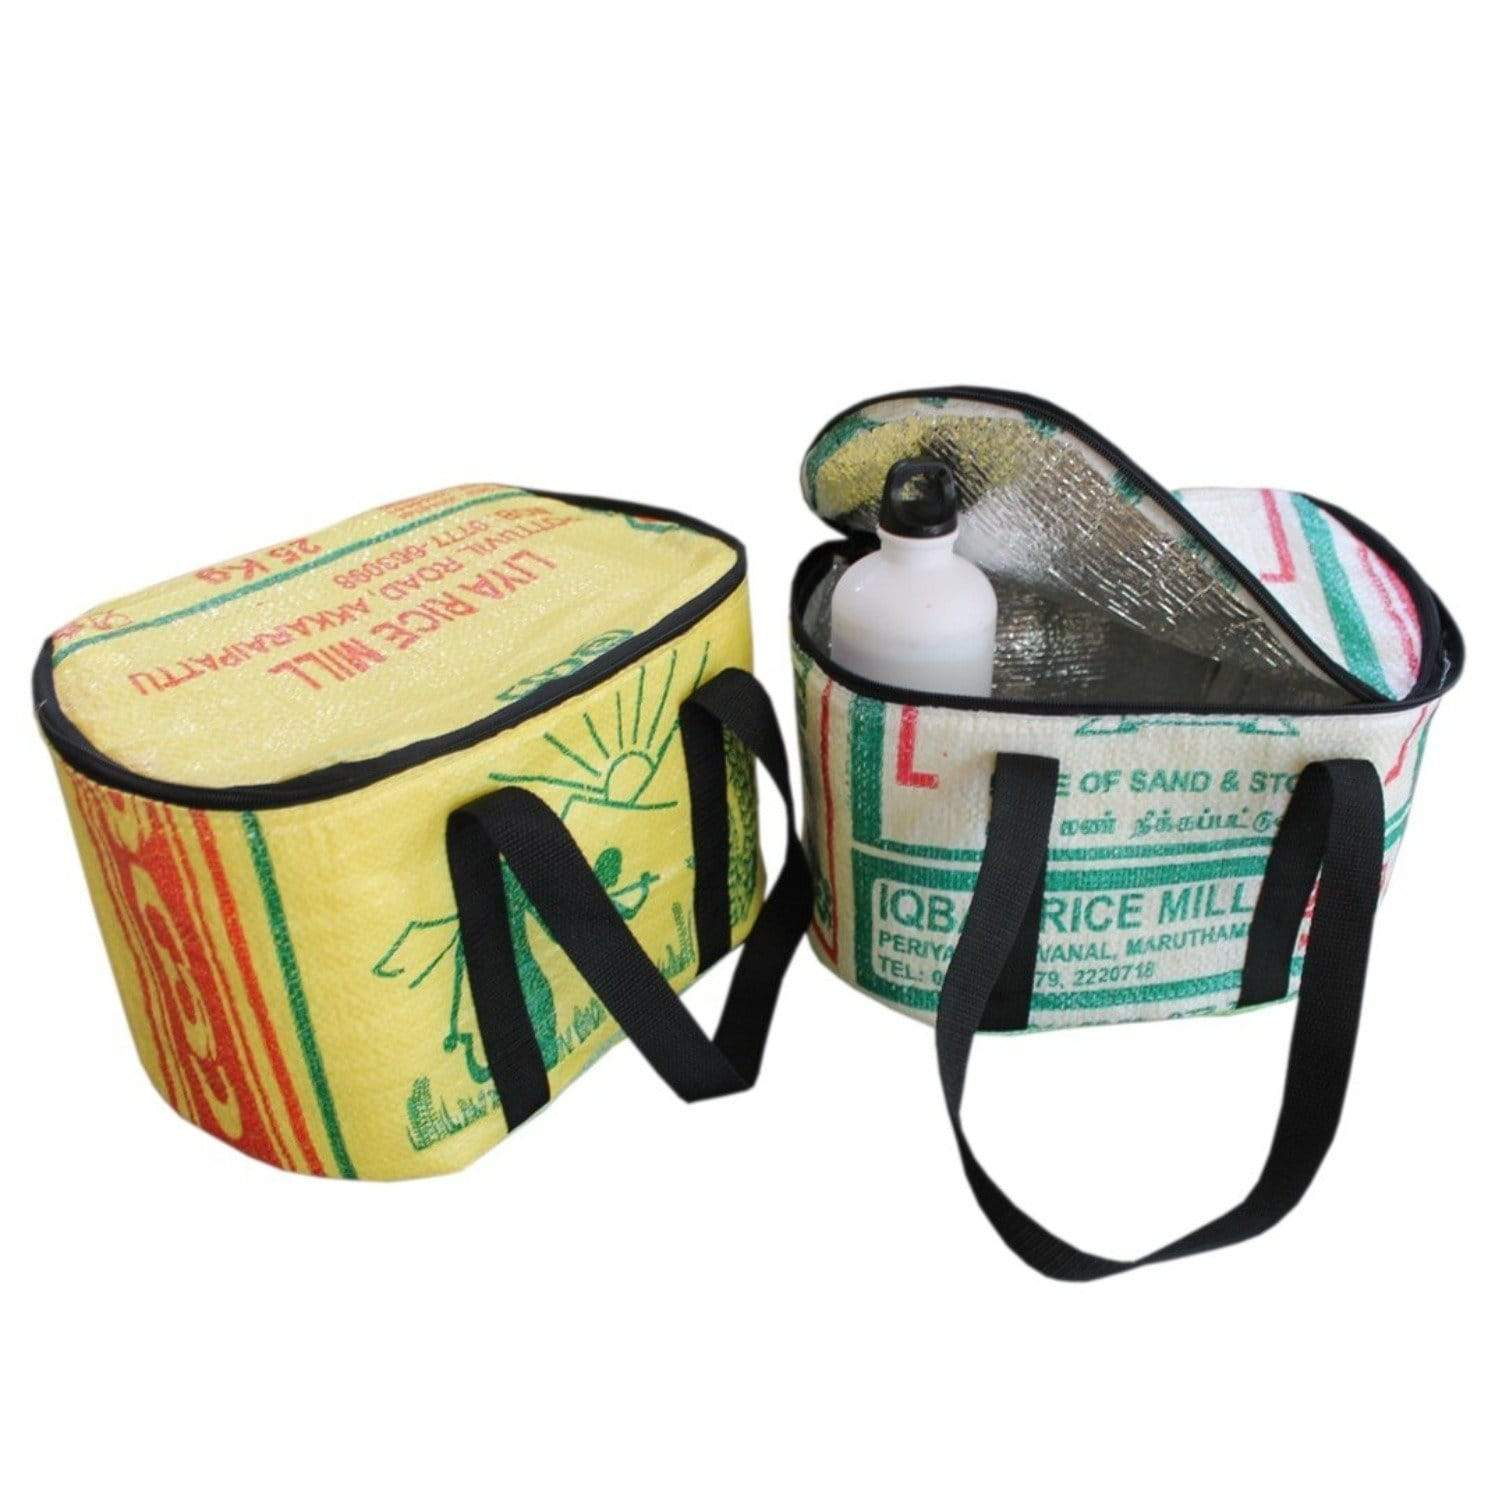 sustainable gifts Rice & Carry Upcycled rice sacks cooler bag